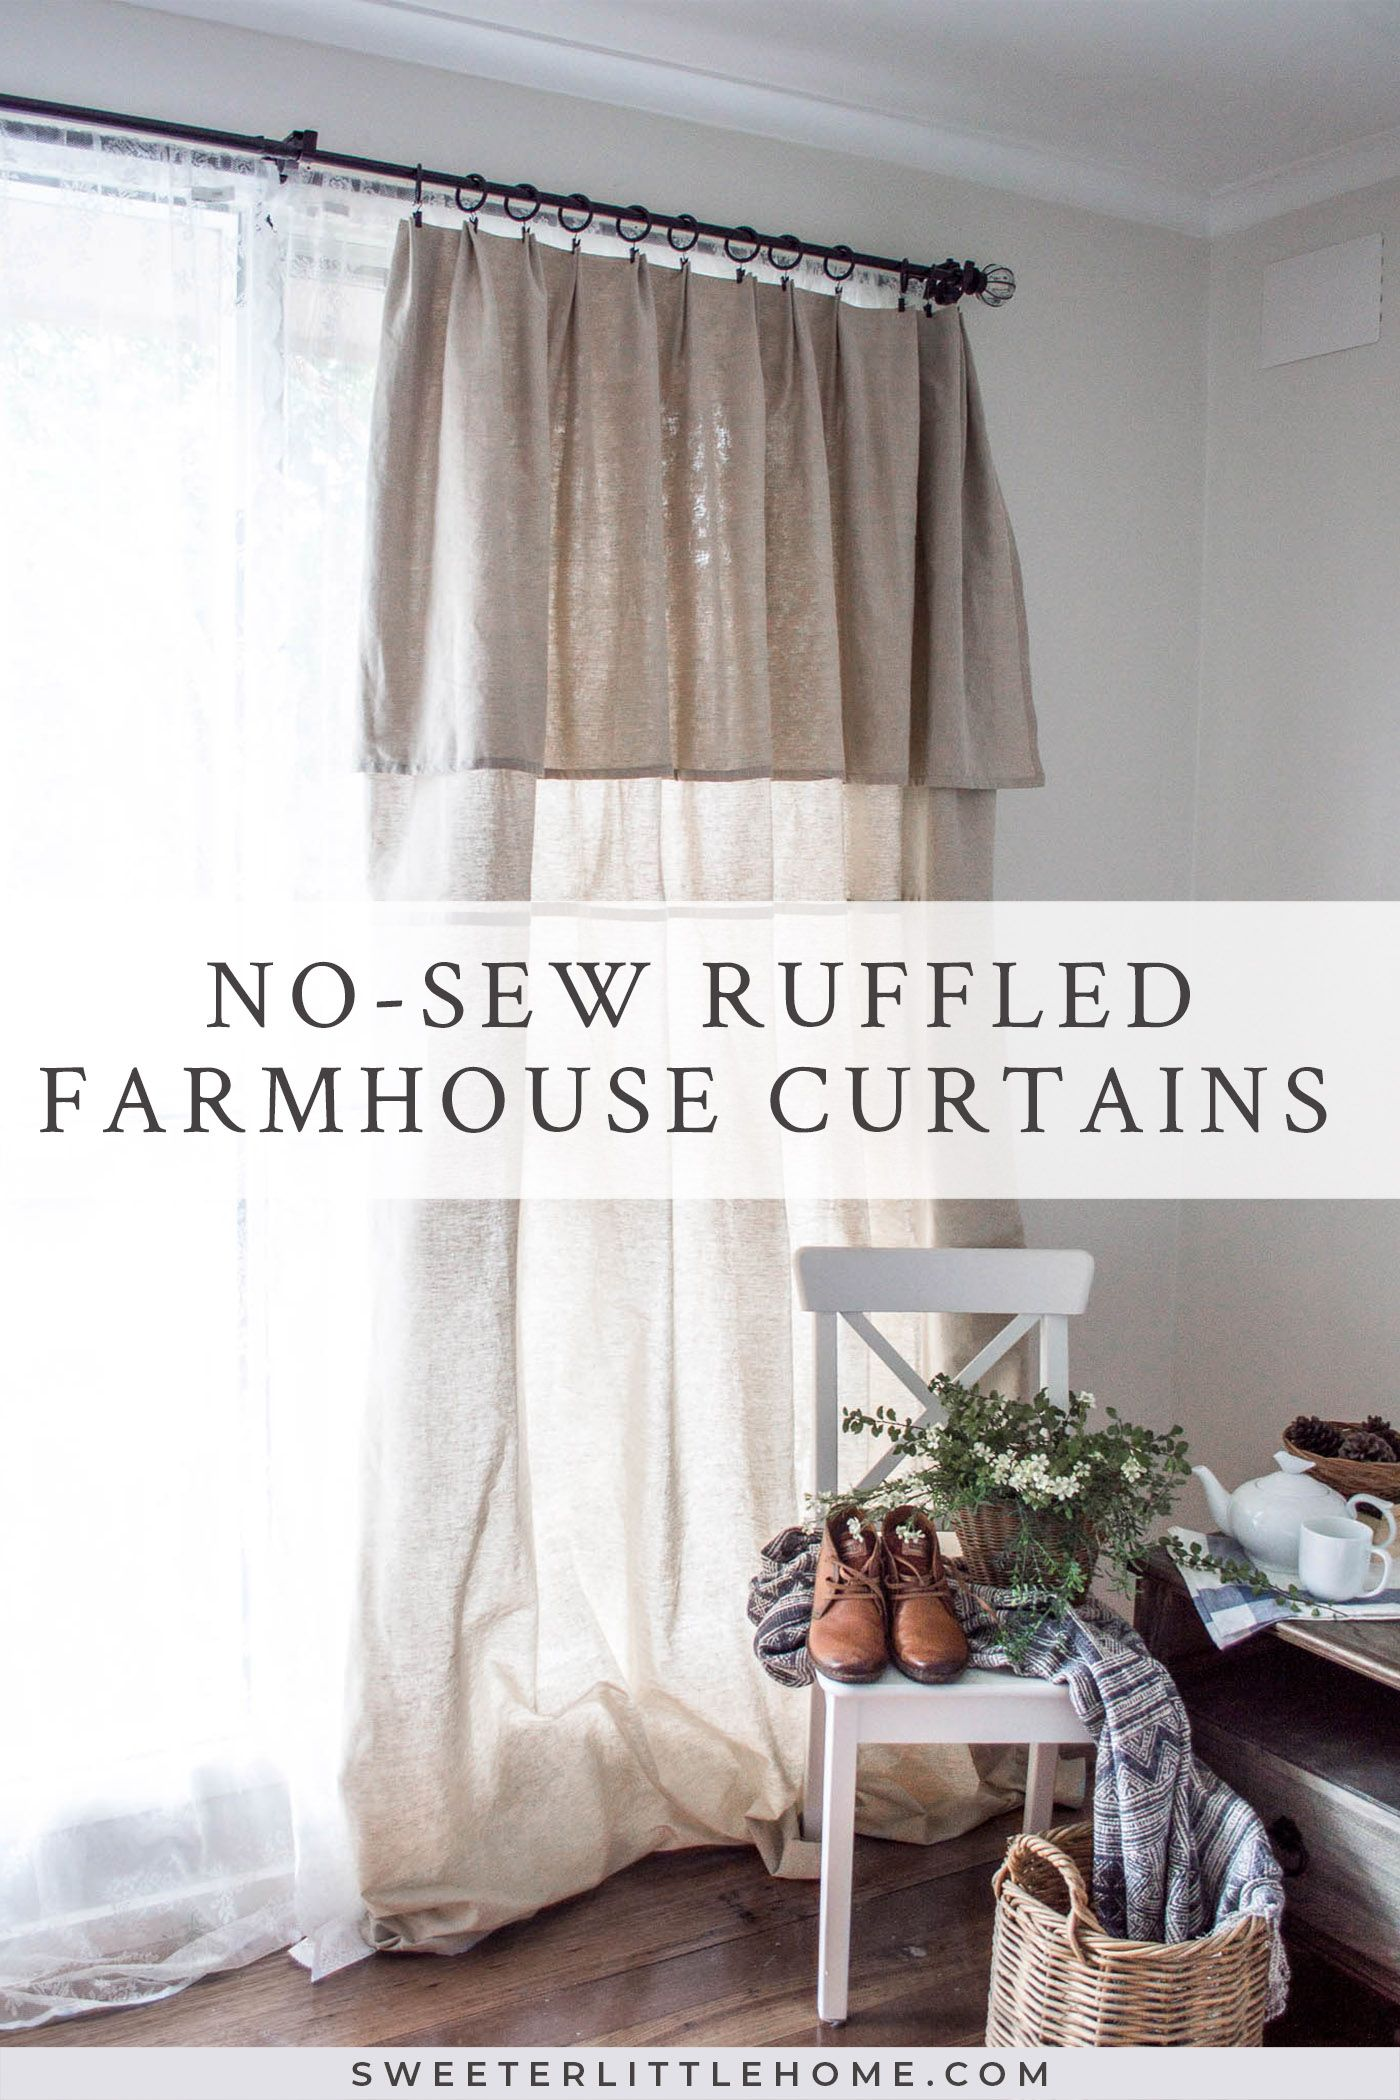 DIY nosew farmhouse curtains from a tablecloth